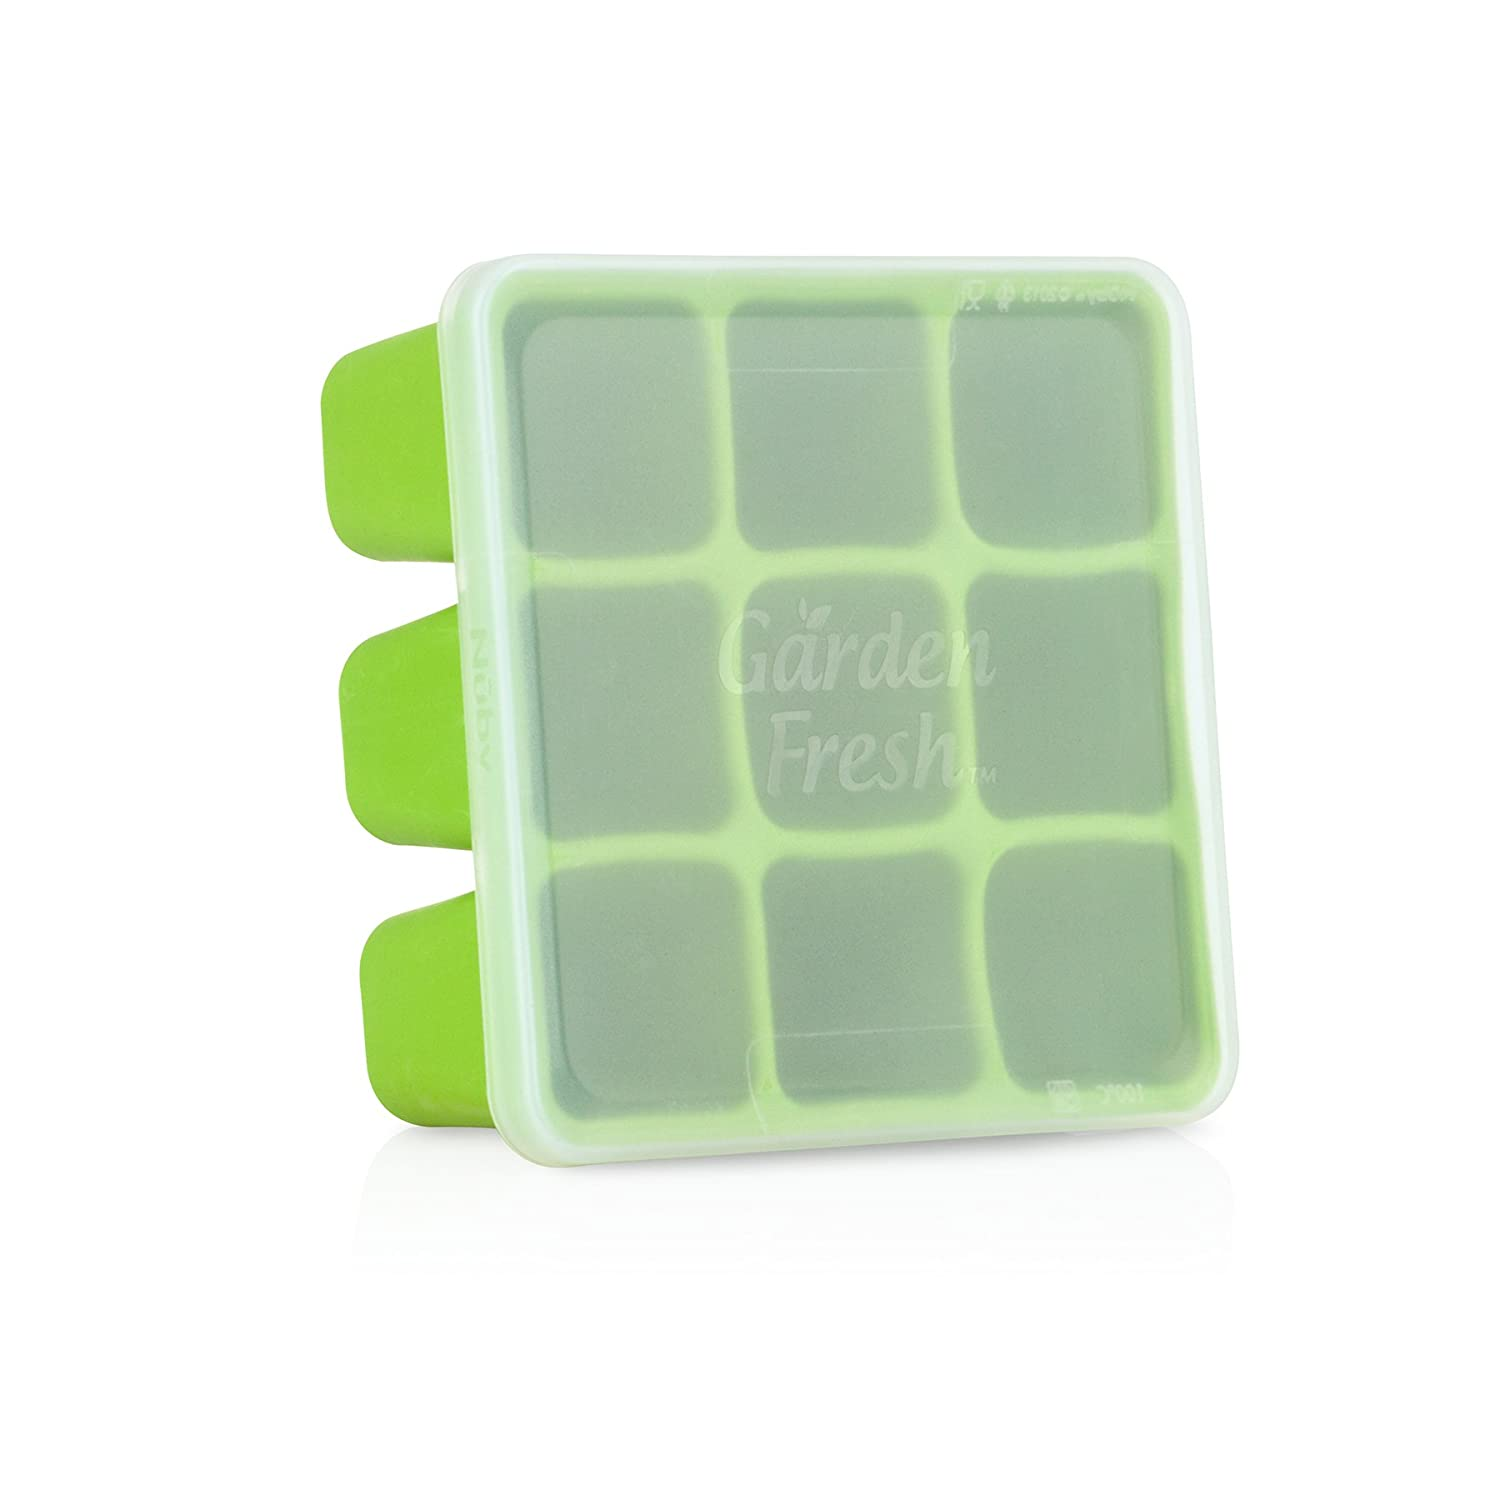 Nuby 534345GR Garden Fresh Freezer Tray, Green